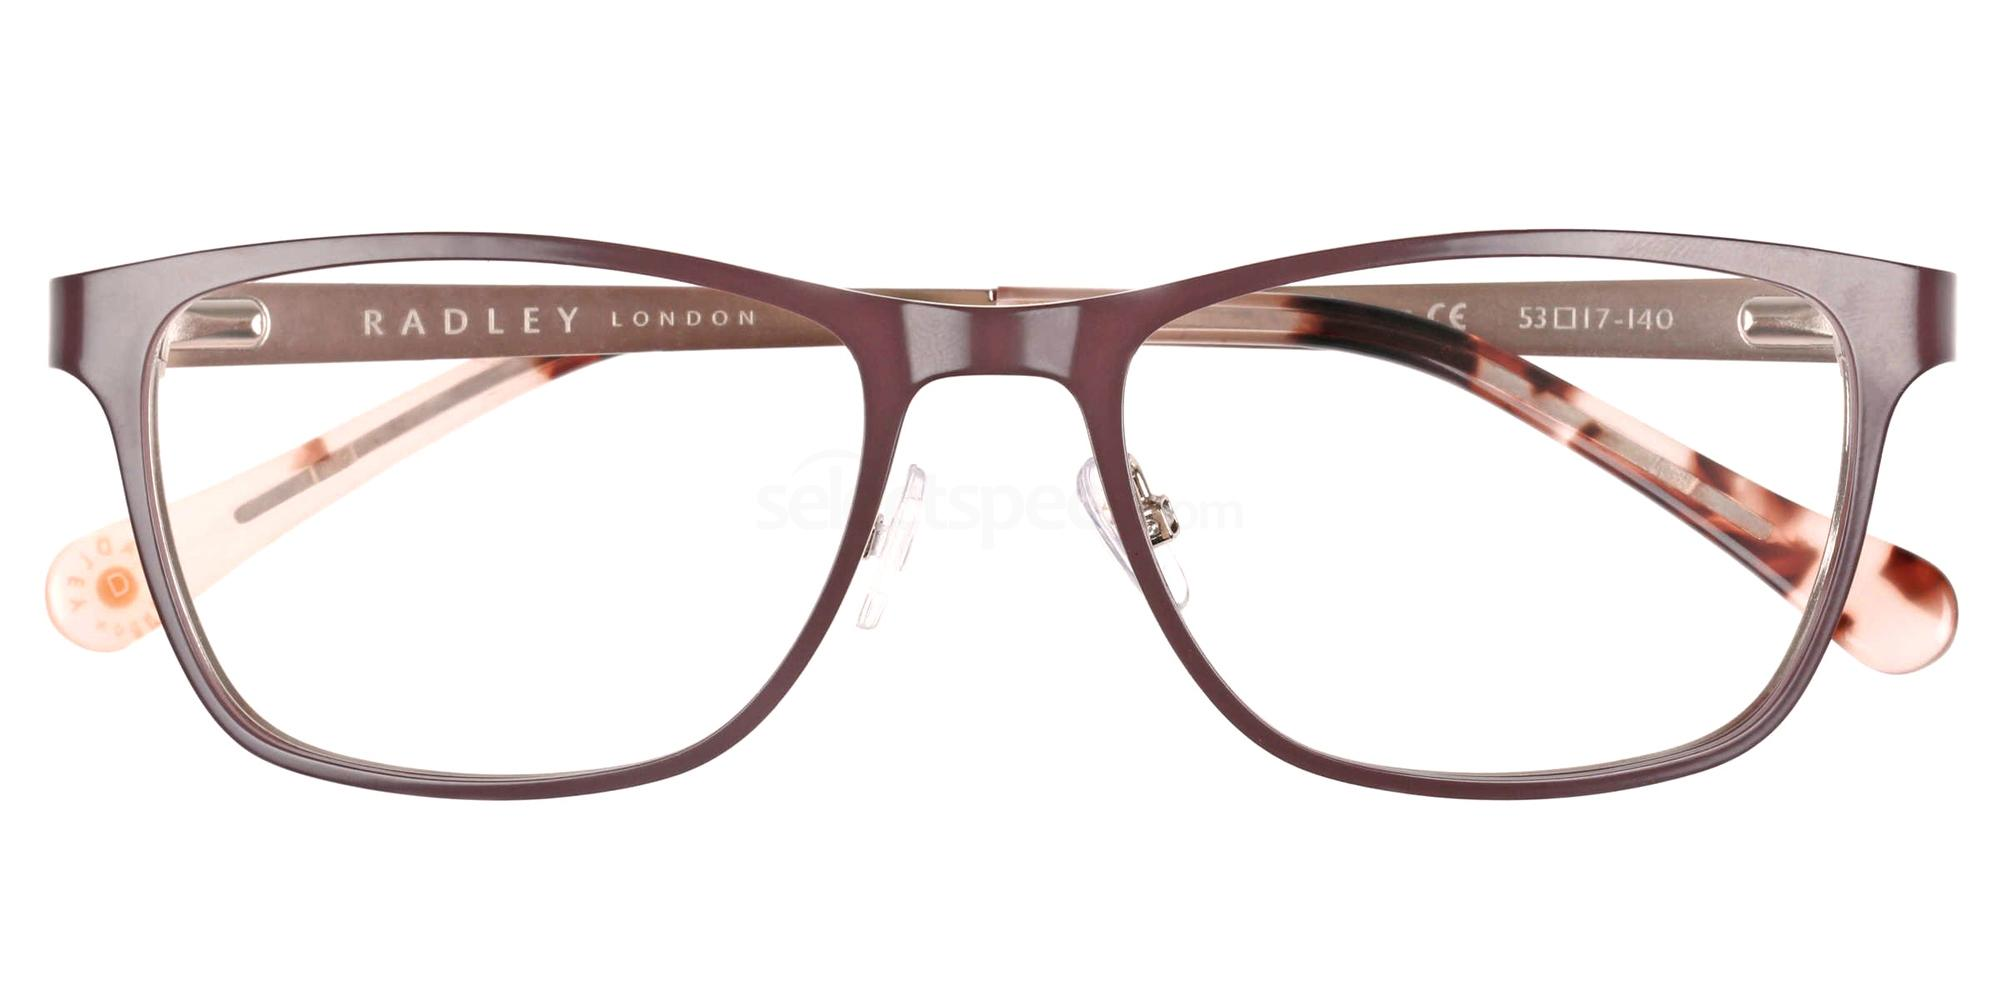 003 RDO-NATALLIA Glasses, Radley London